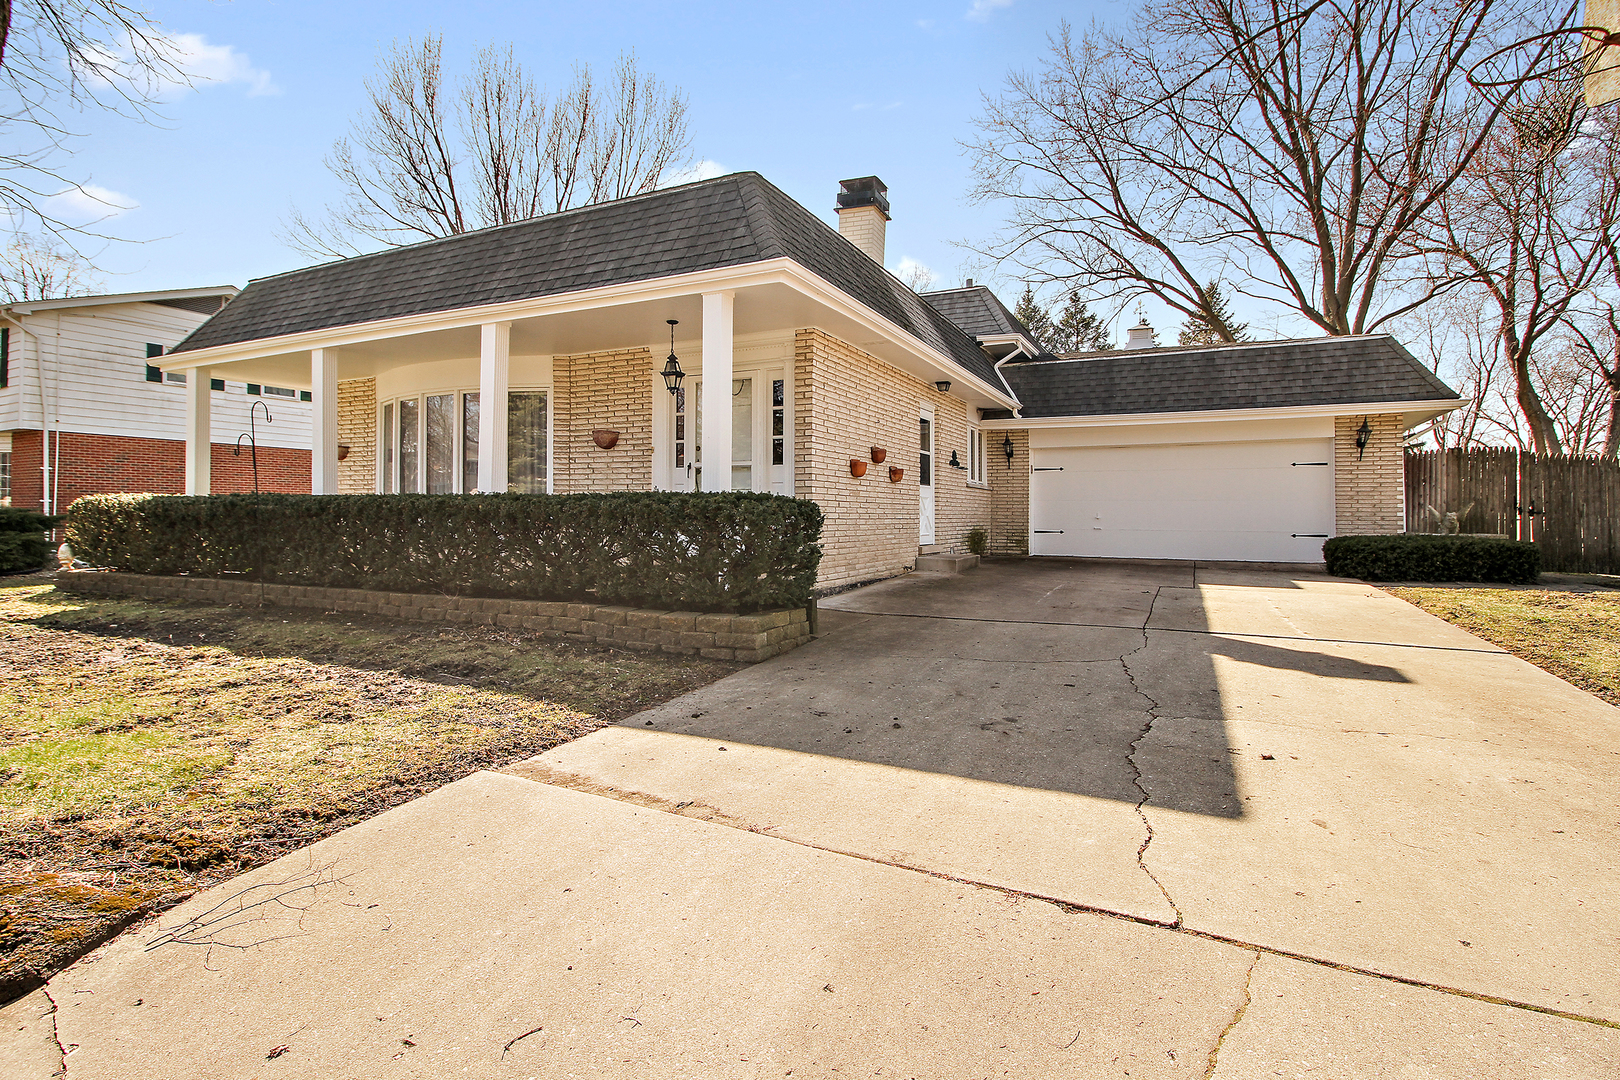 13020 South 70th Court, Palos Heights, Illinois